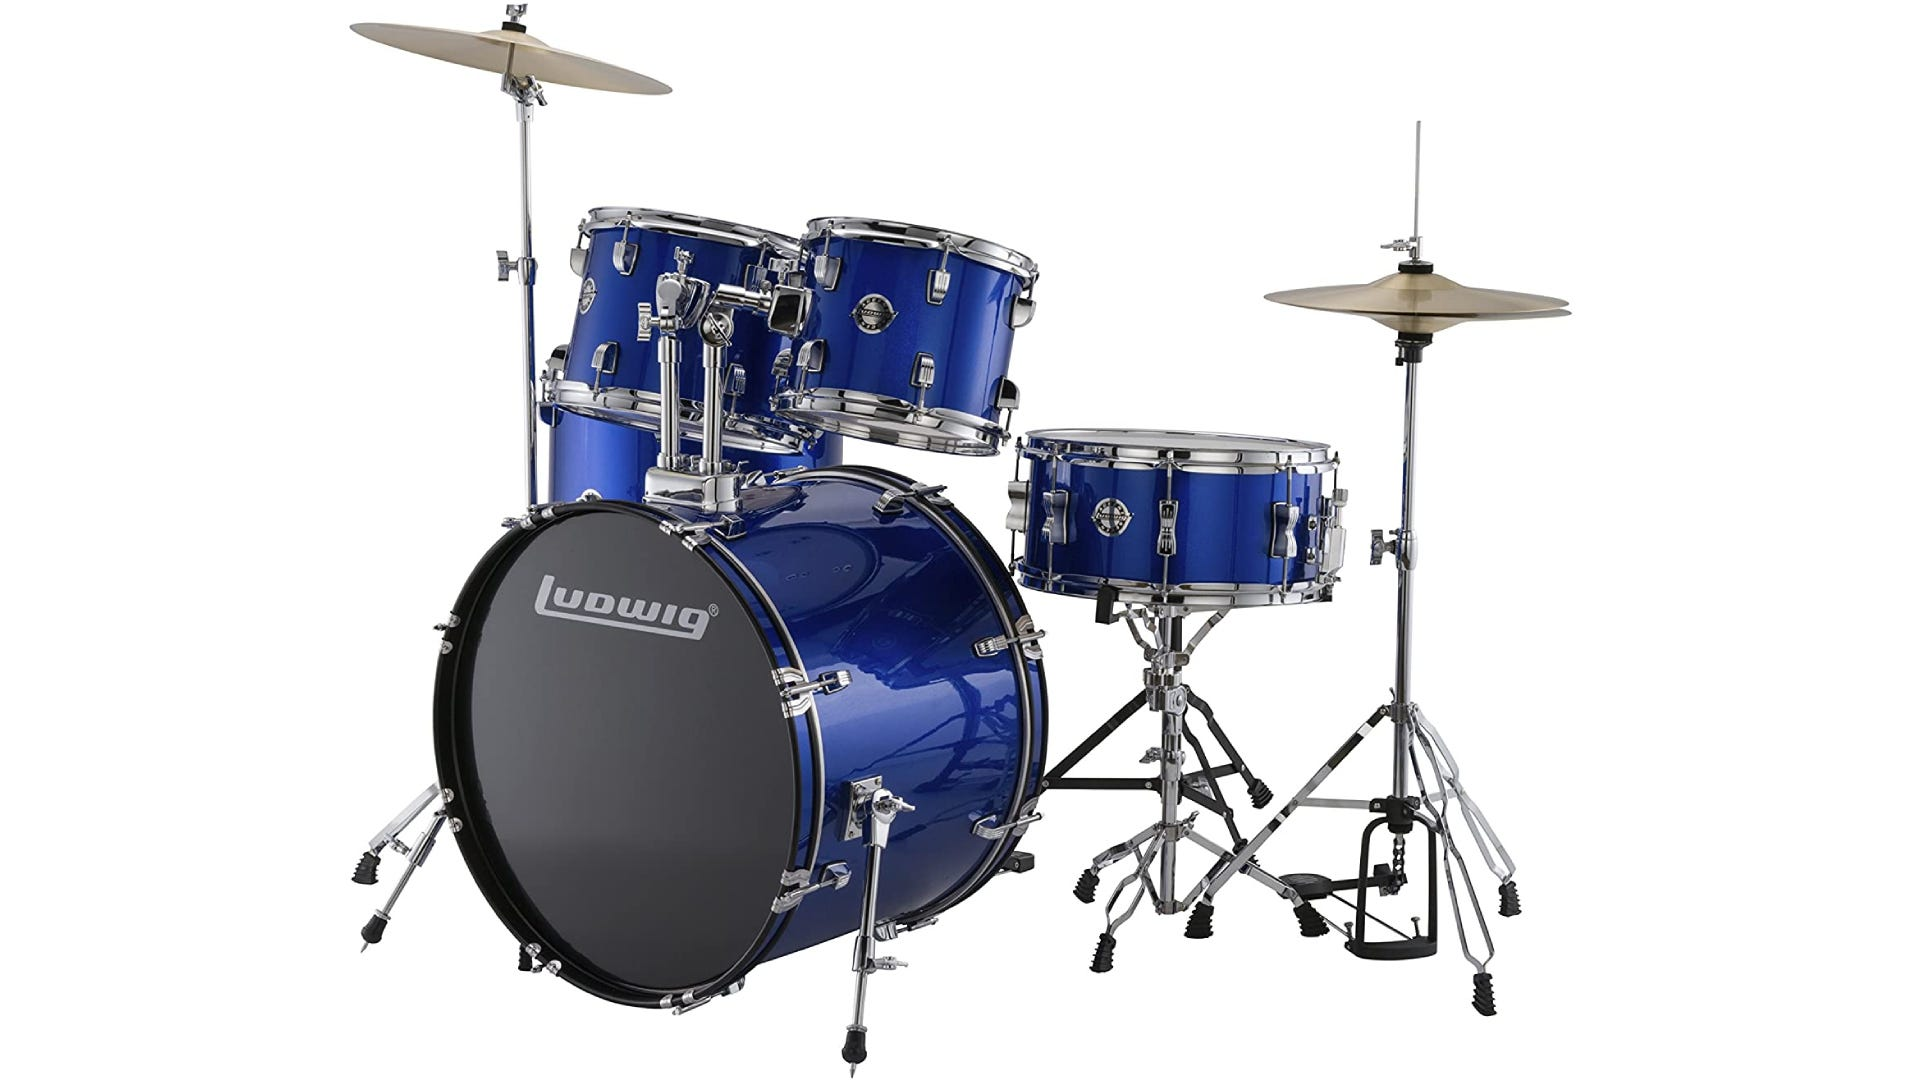 blue-colored drum set with bass drum, snare, two mounted toms, floor tom, hi-hat, and crash cymbal.